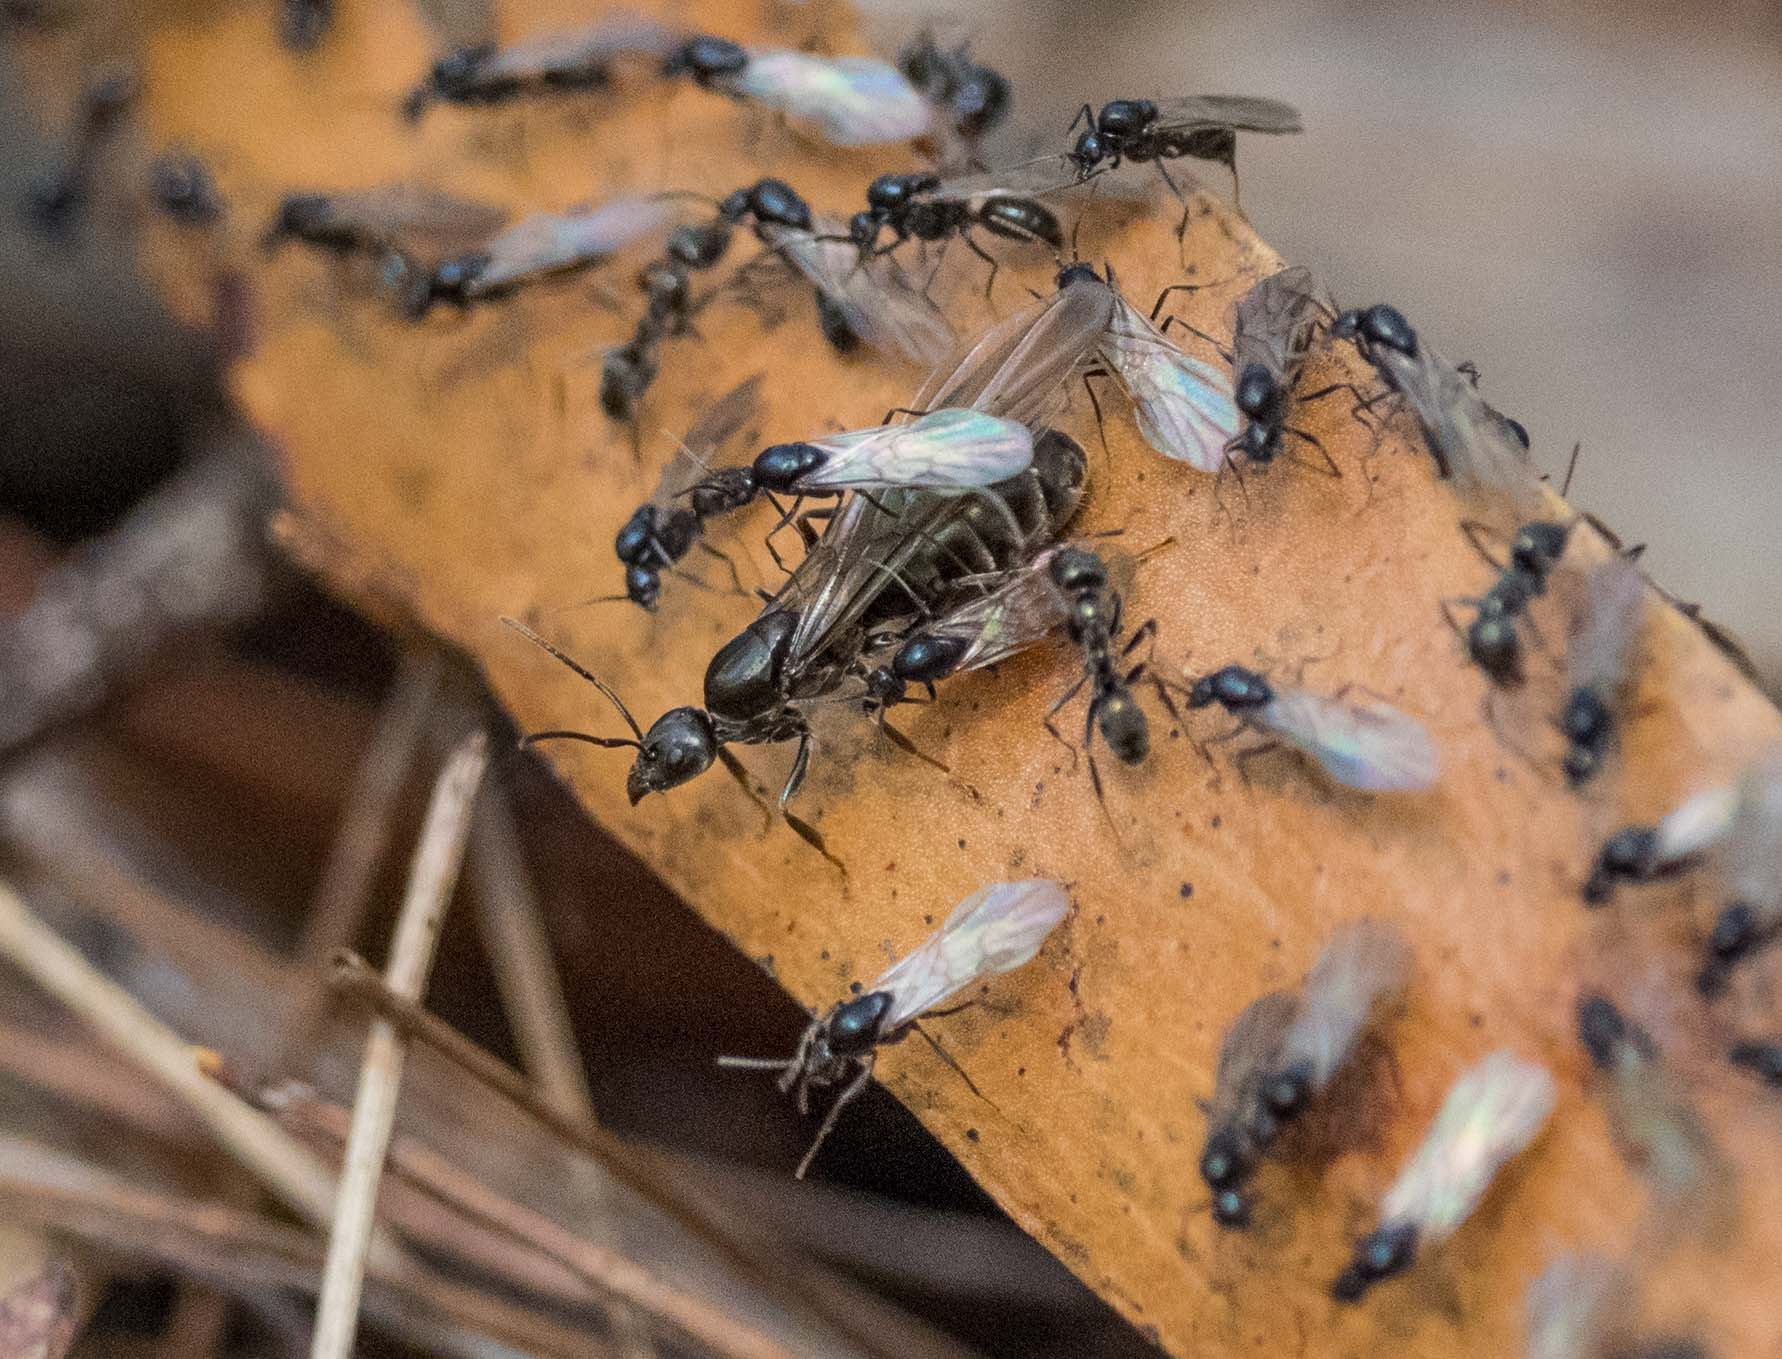 A single queen surrounded by alate males